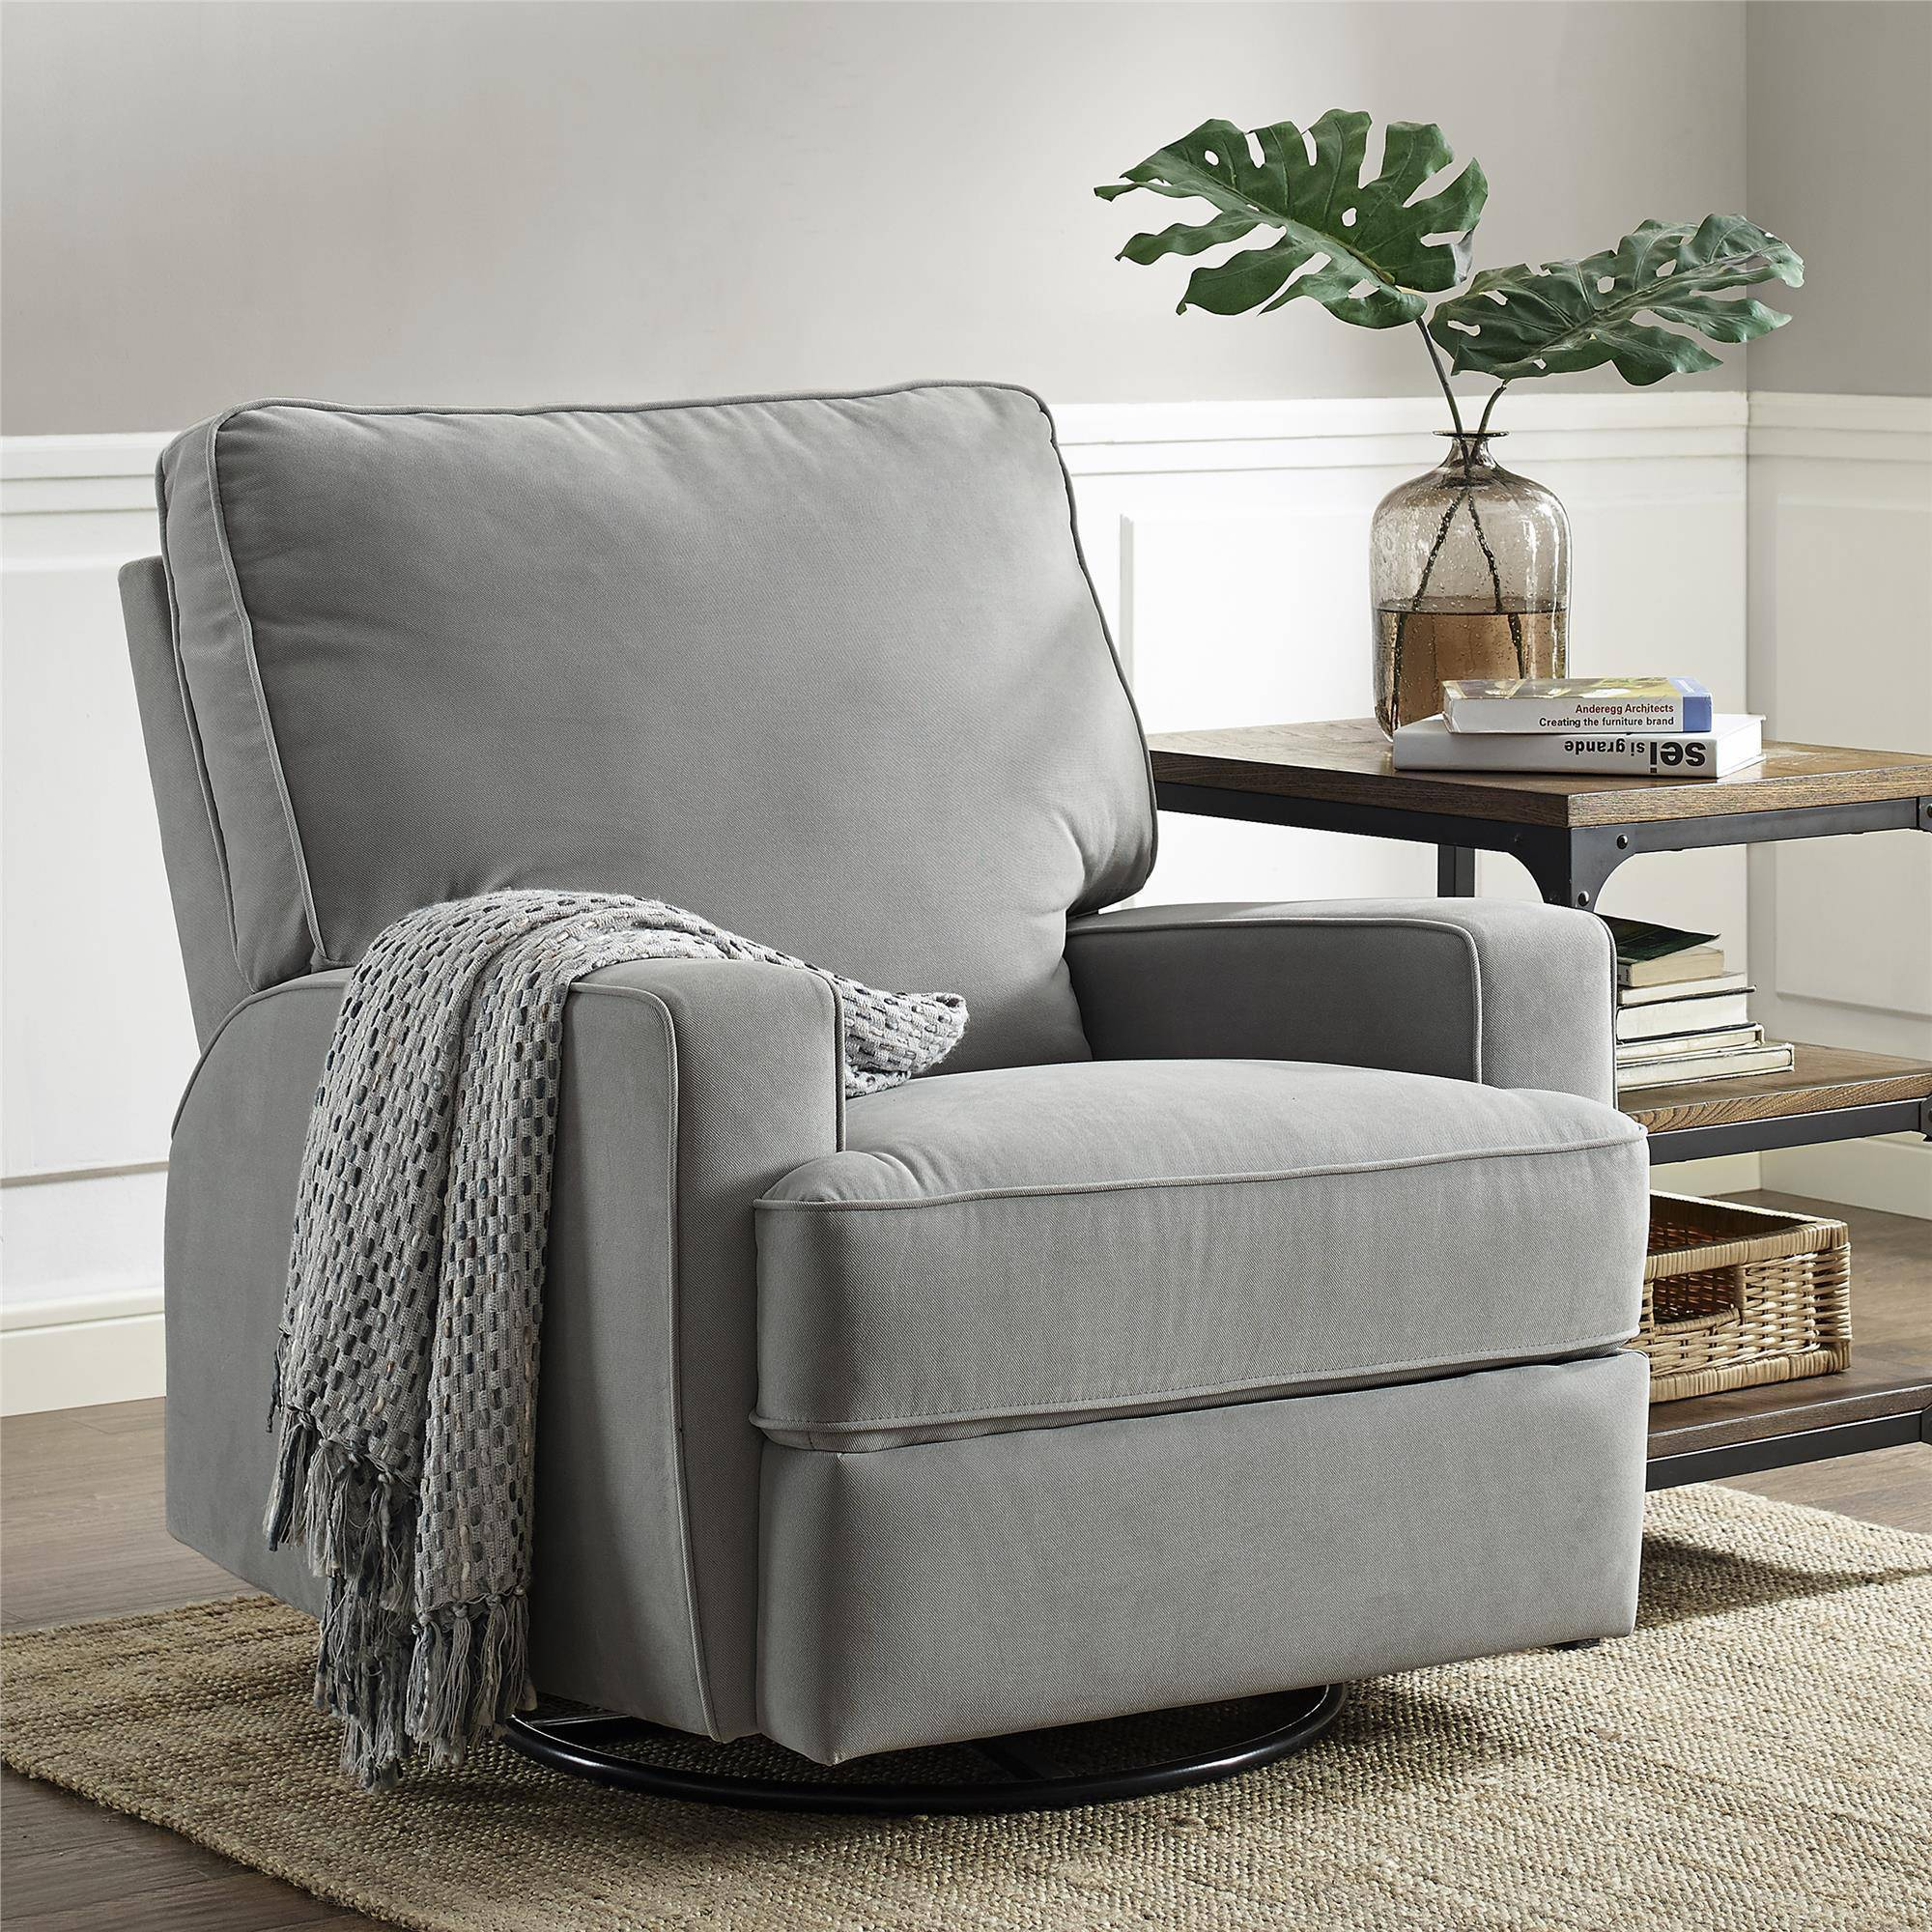 baby relax rylan swivel gliding recliner choose your color walmartcom - Swivel Rocker Chairs For Living Room